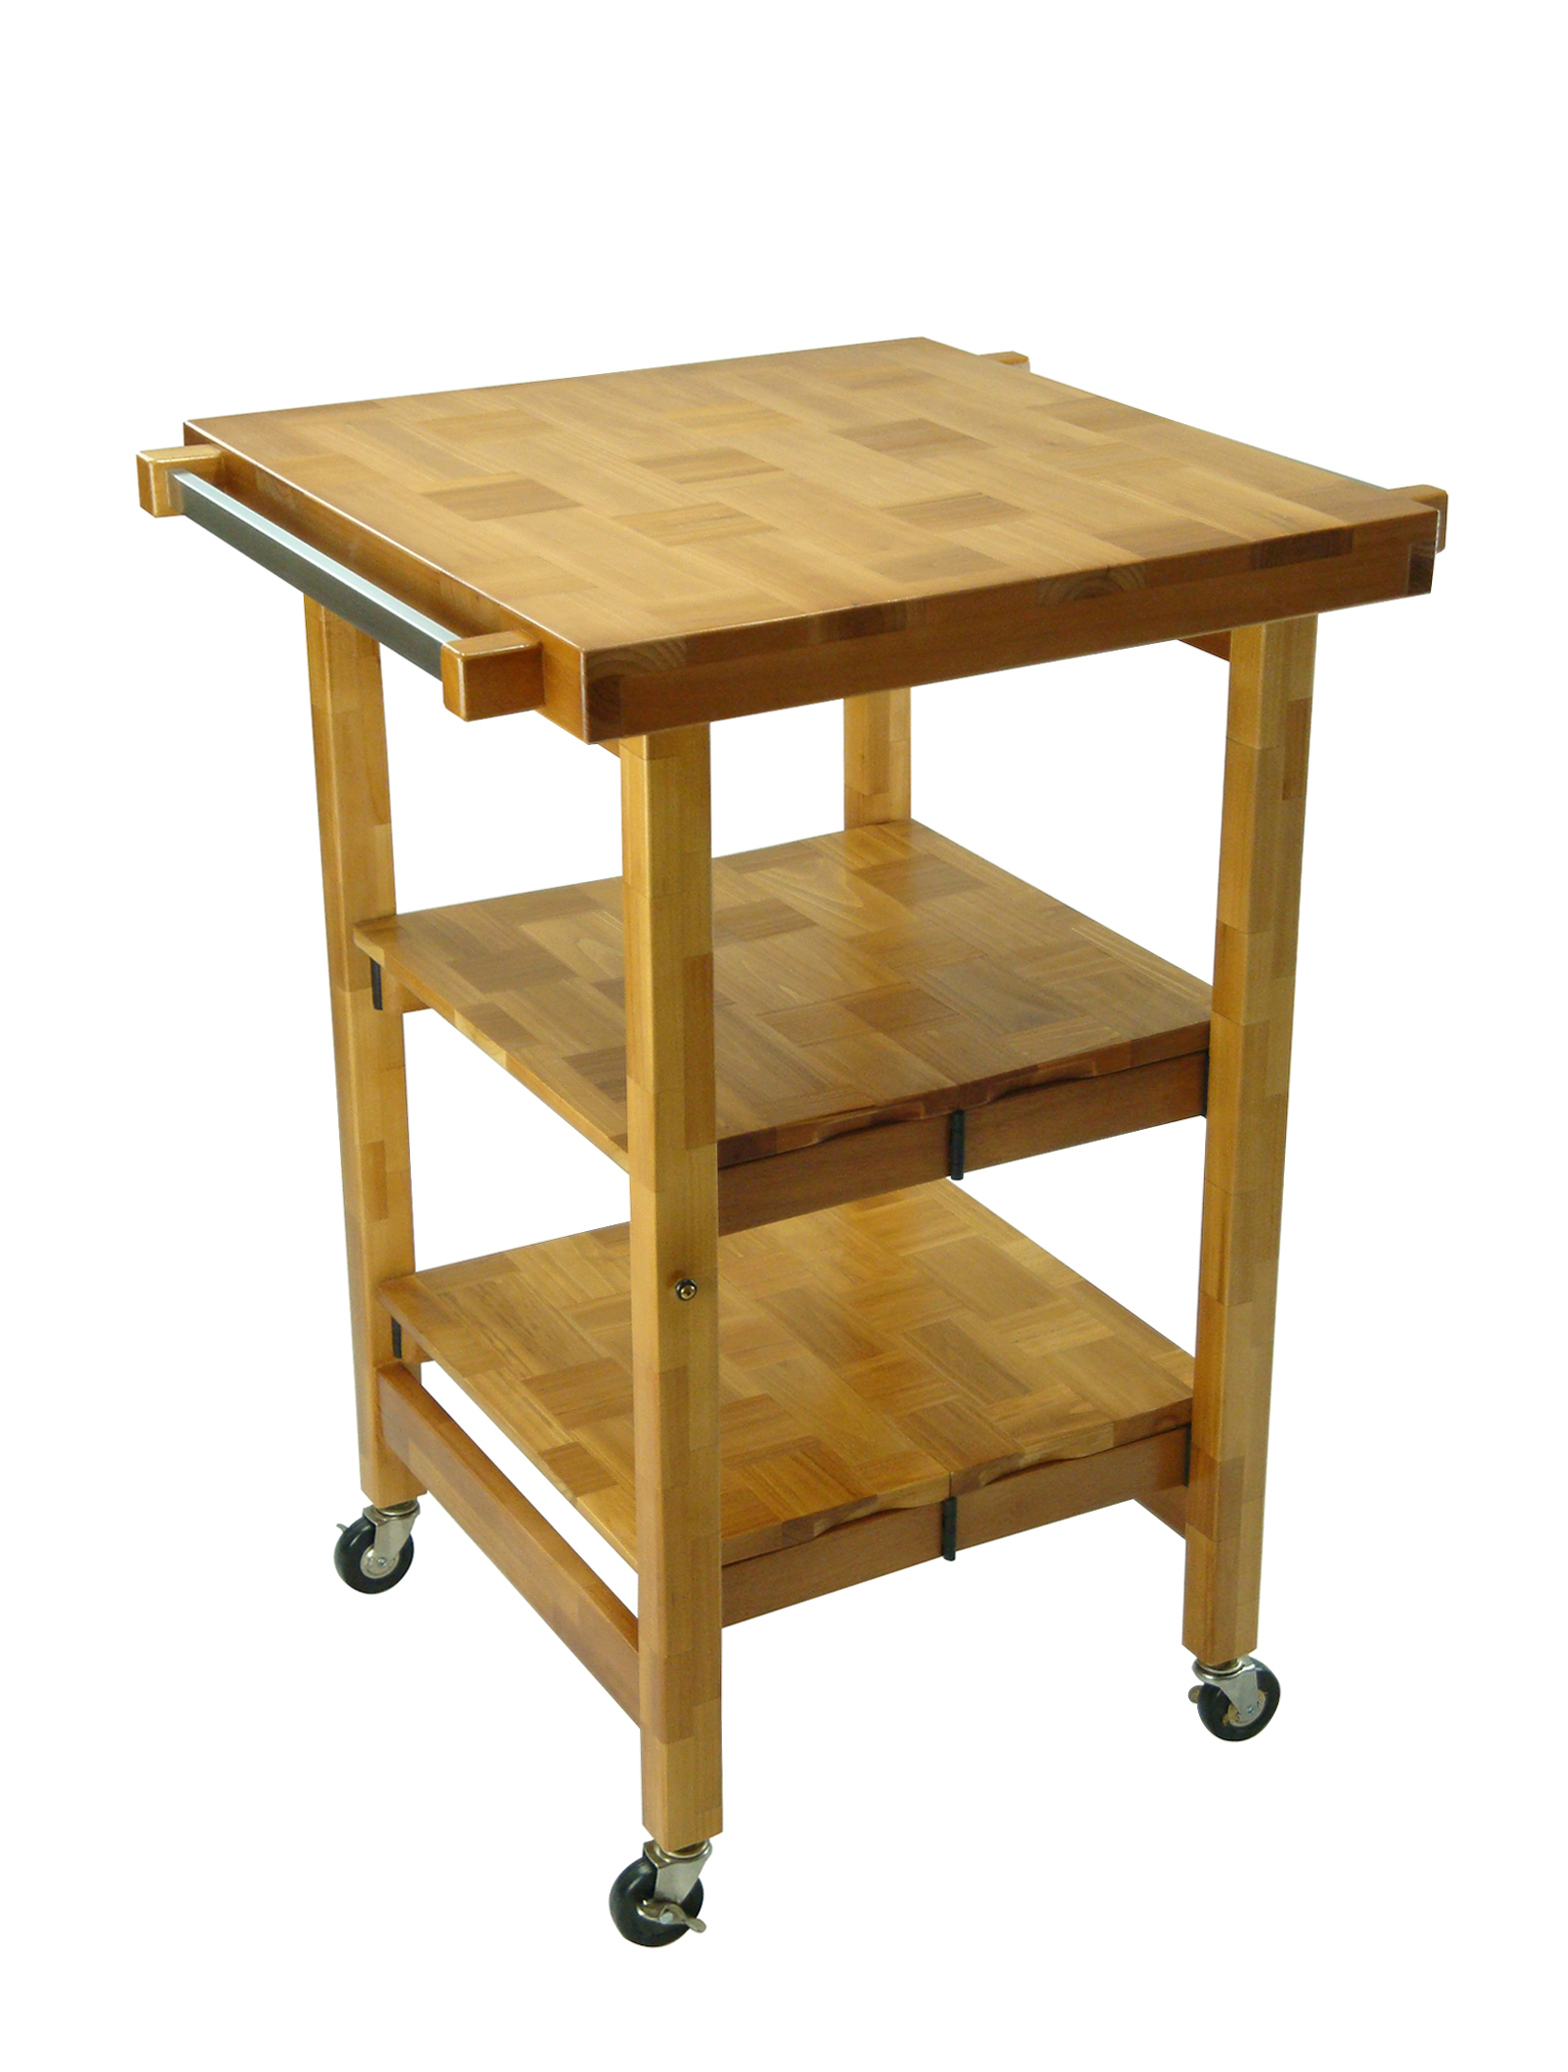 Oasis island kitchen cart 28 images oasis concepts for All wood kitchen island